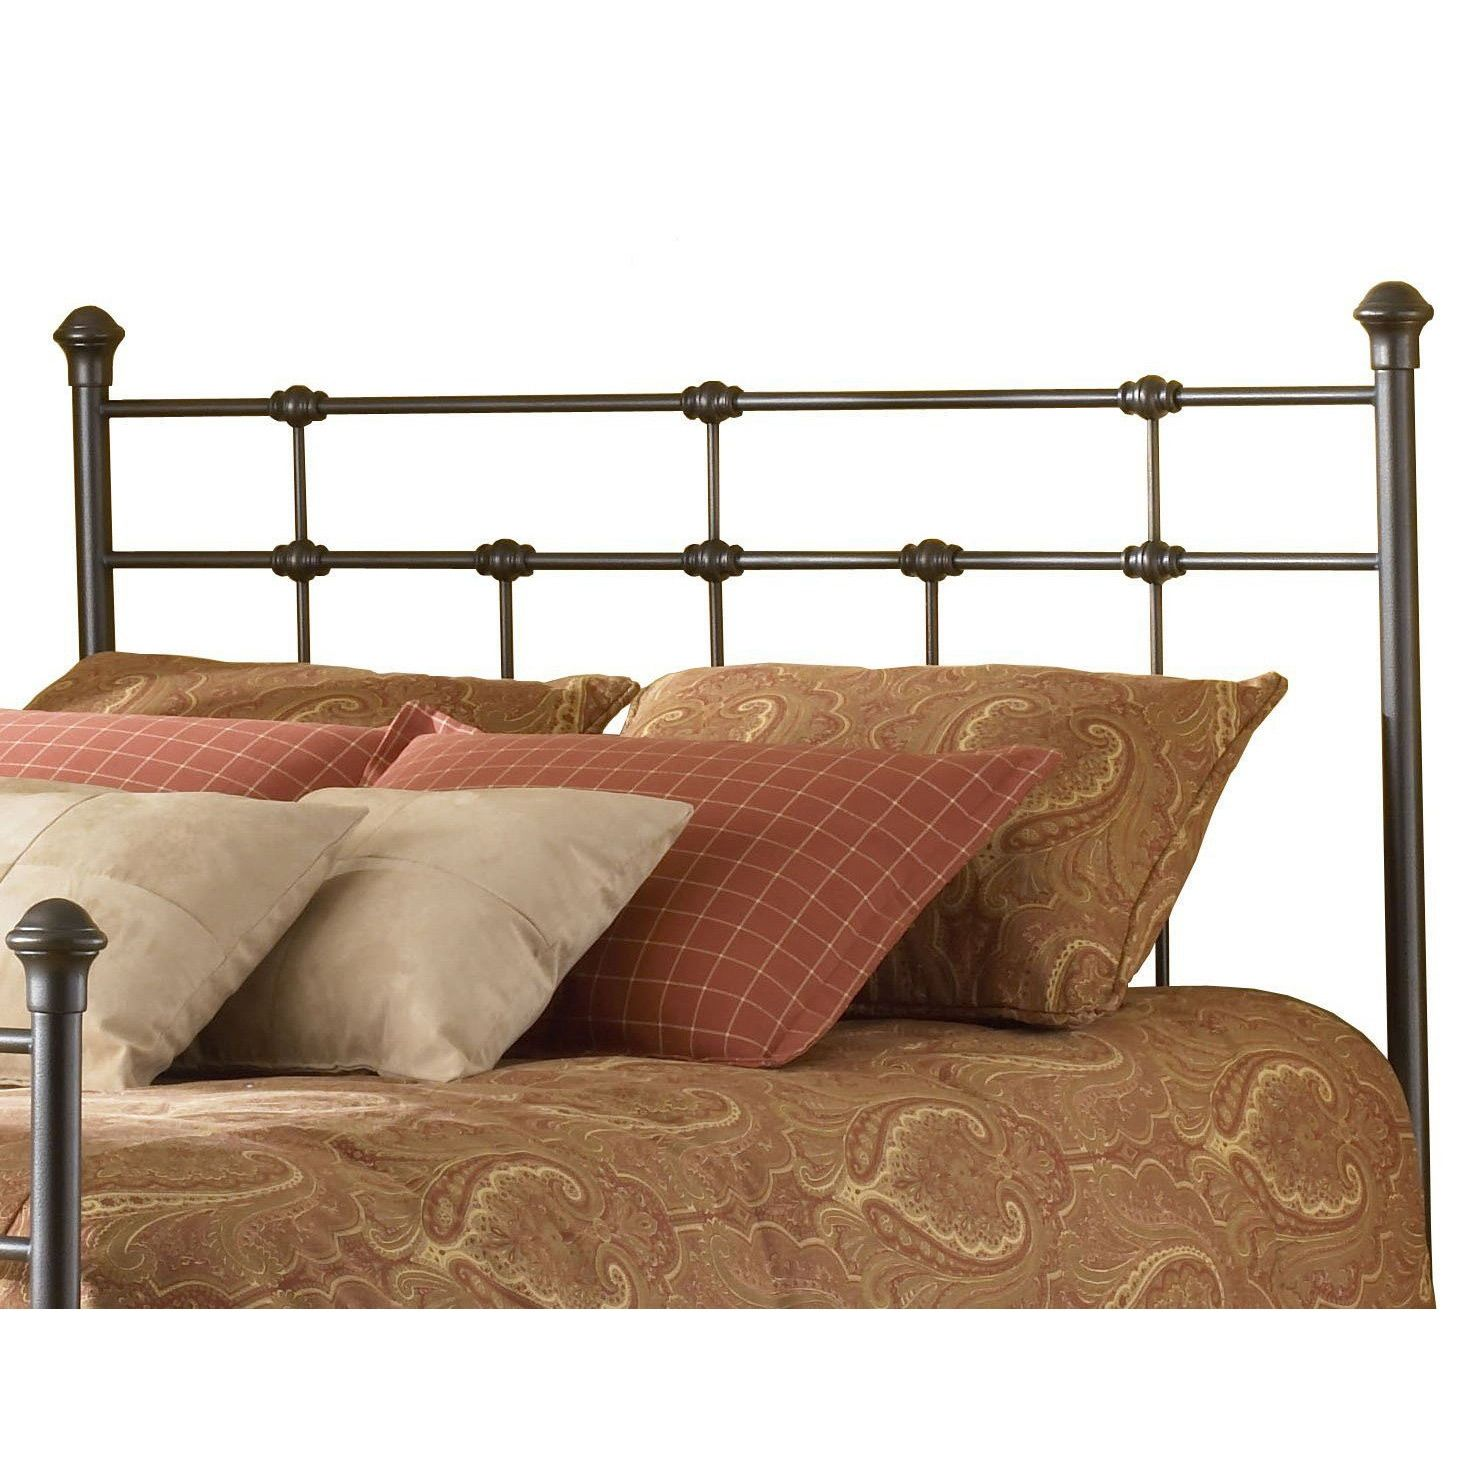 Pin by Diane Daddio on queen headboards Bed styling